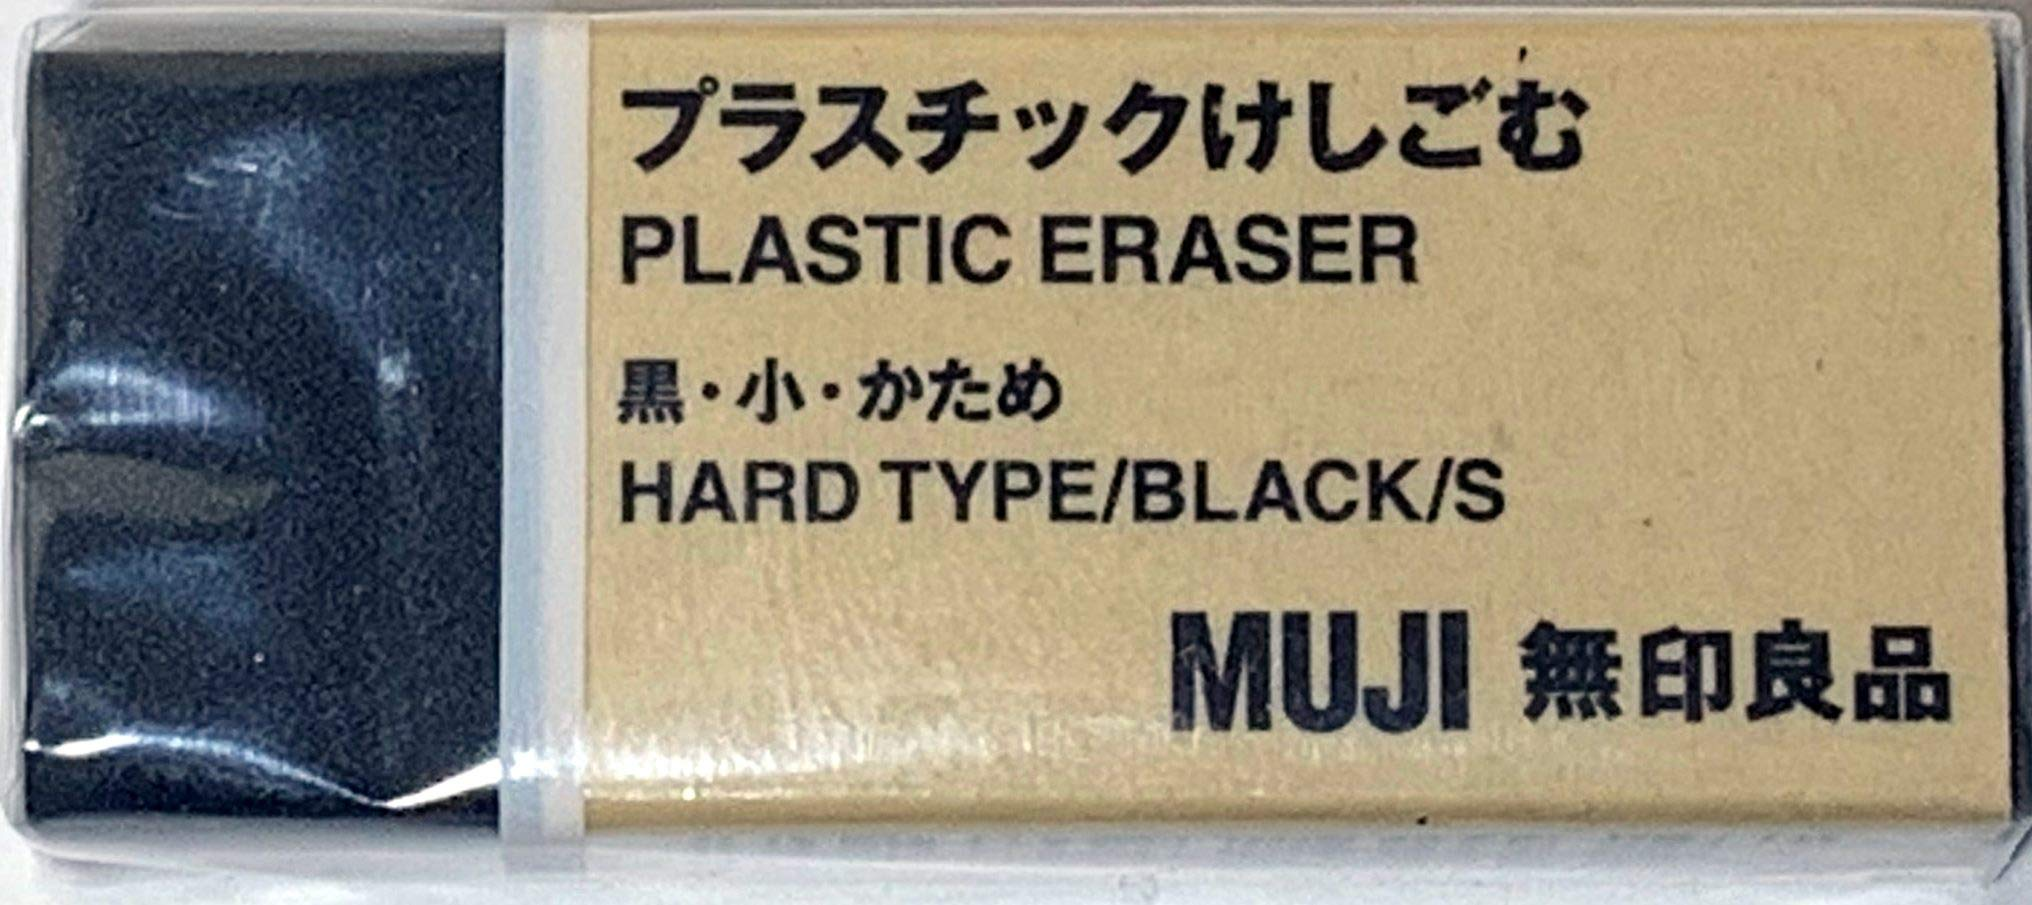 MUJI Plastic Eraser Black Small 5 pcs Set New design of 2019 (Black) by MUJI-JAPAN (Image #1)